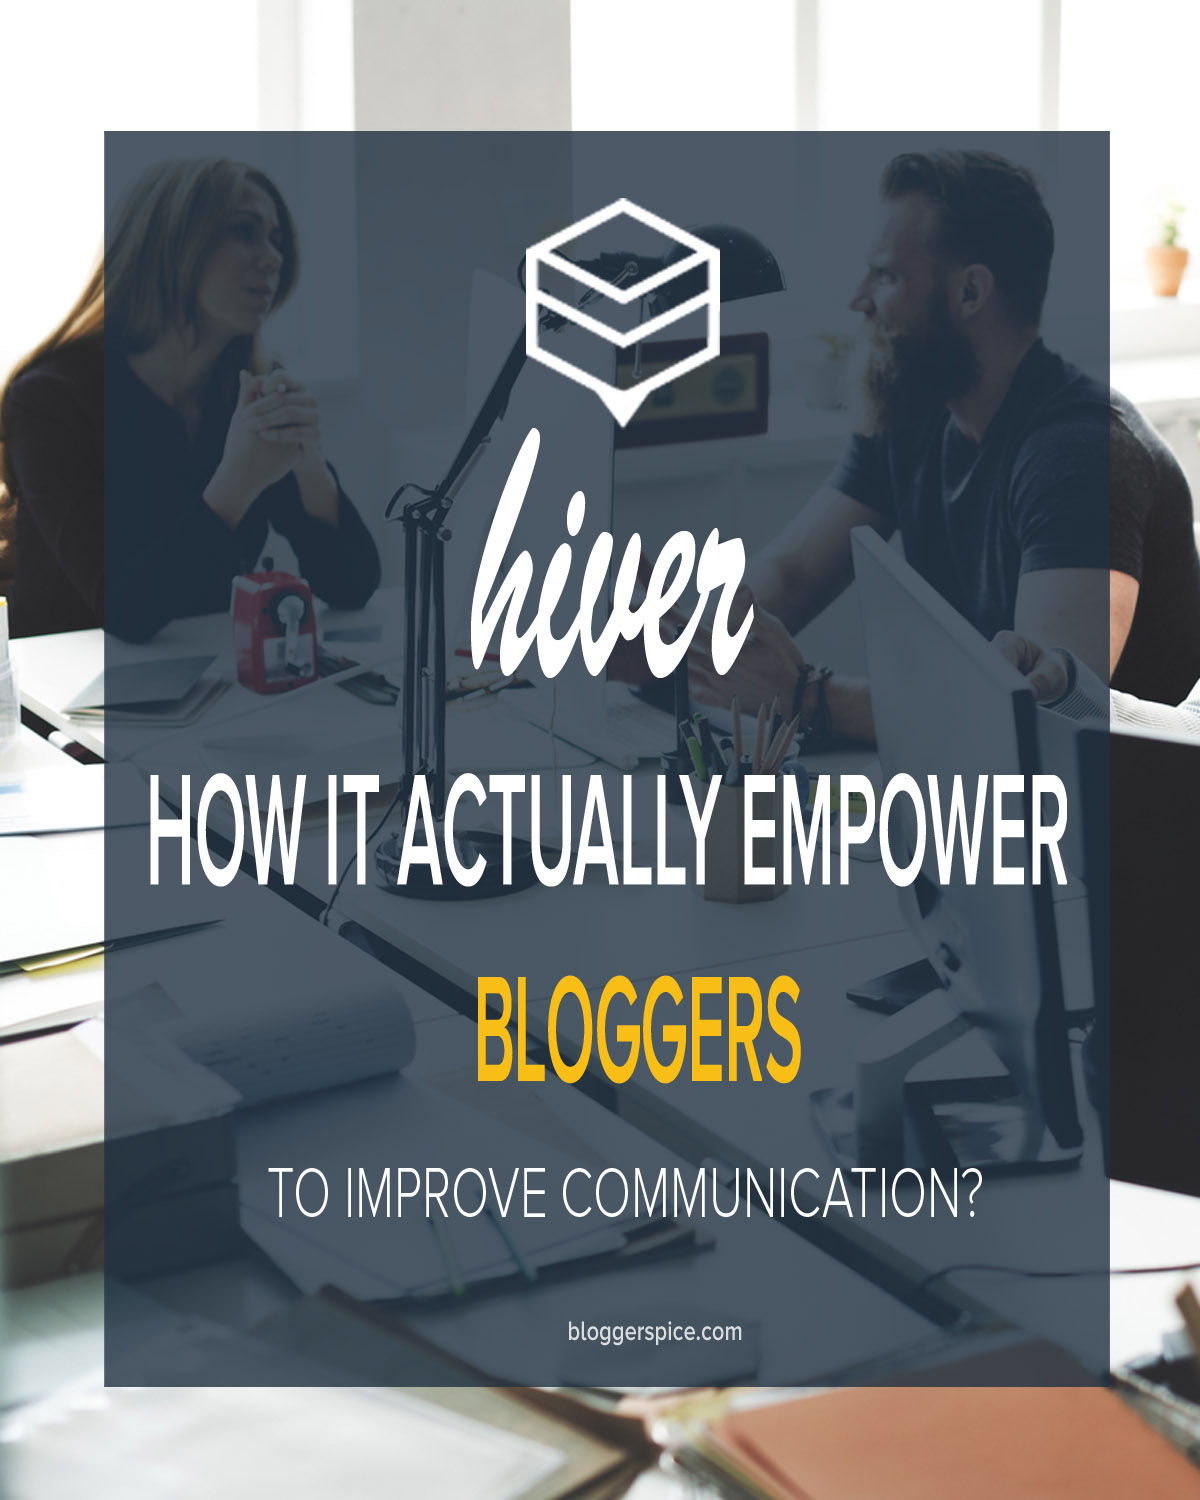 How Hiver actually empower Bloggers to improve communication?